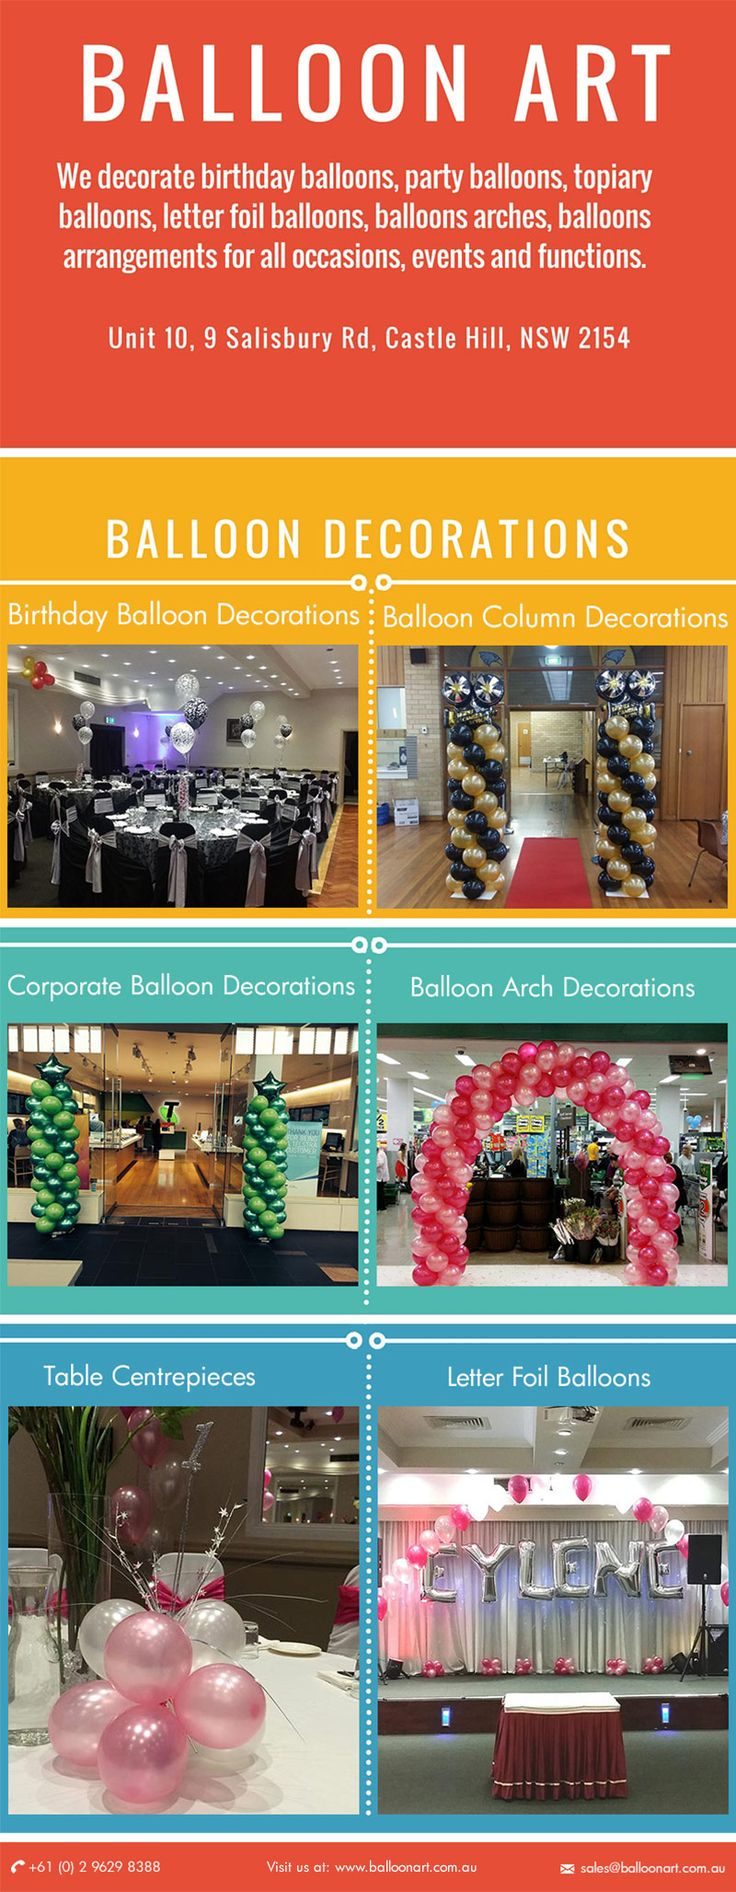 Stunning balloon decoration for #corporate event http://www.balloonart.com.au/corporate-balloon-decorations-and-arrangements/ #Balloon #Art